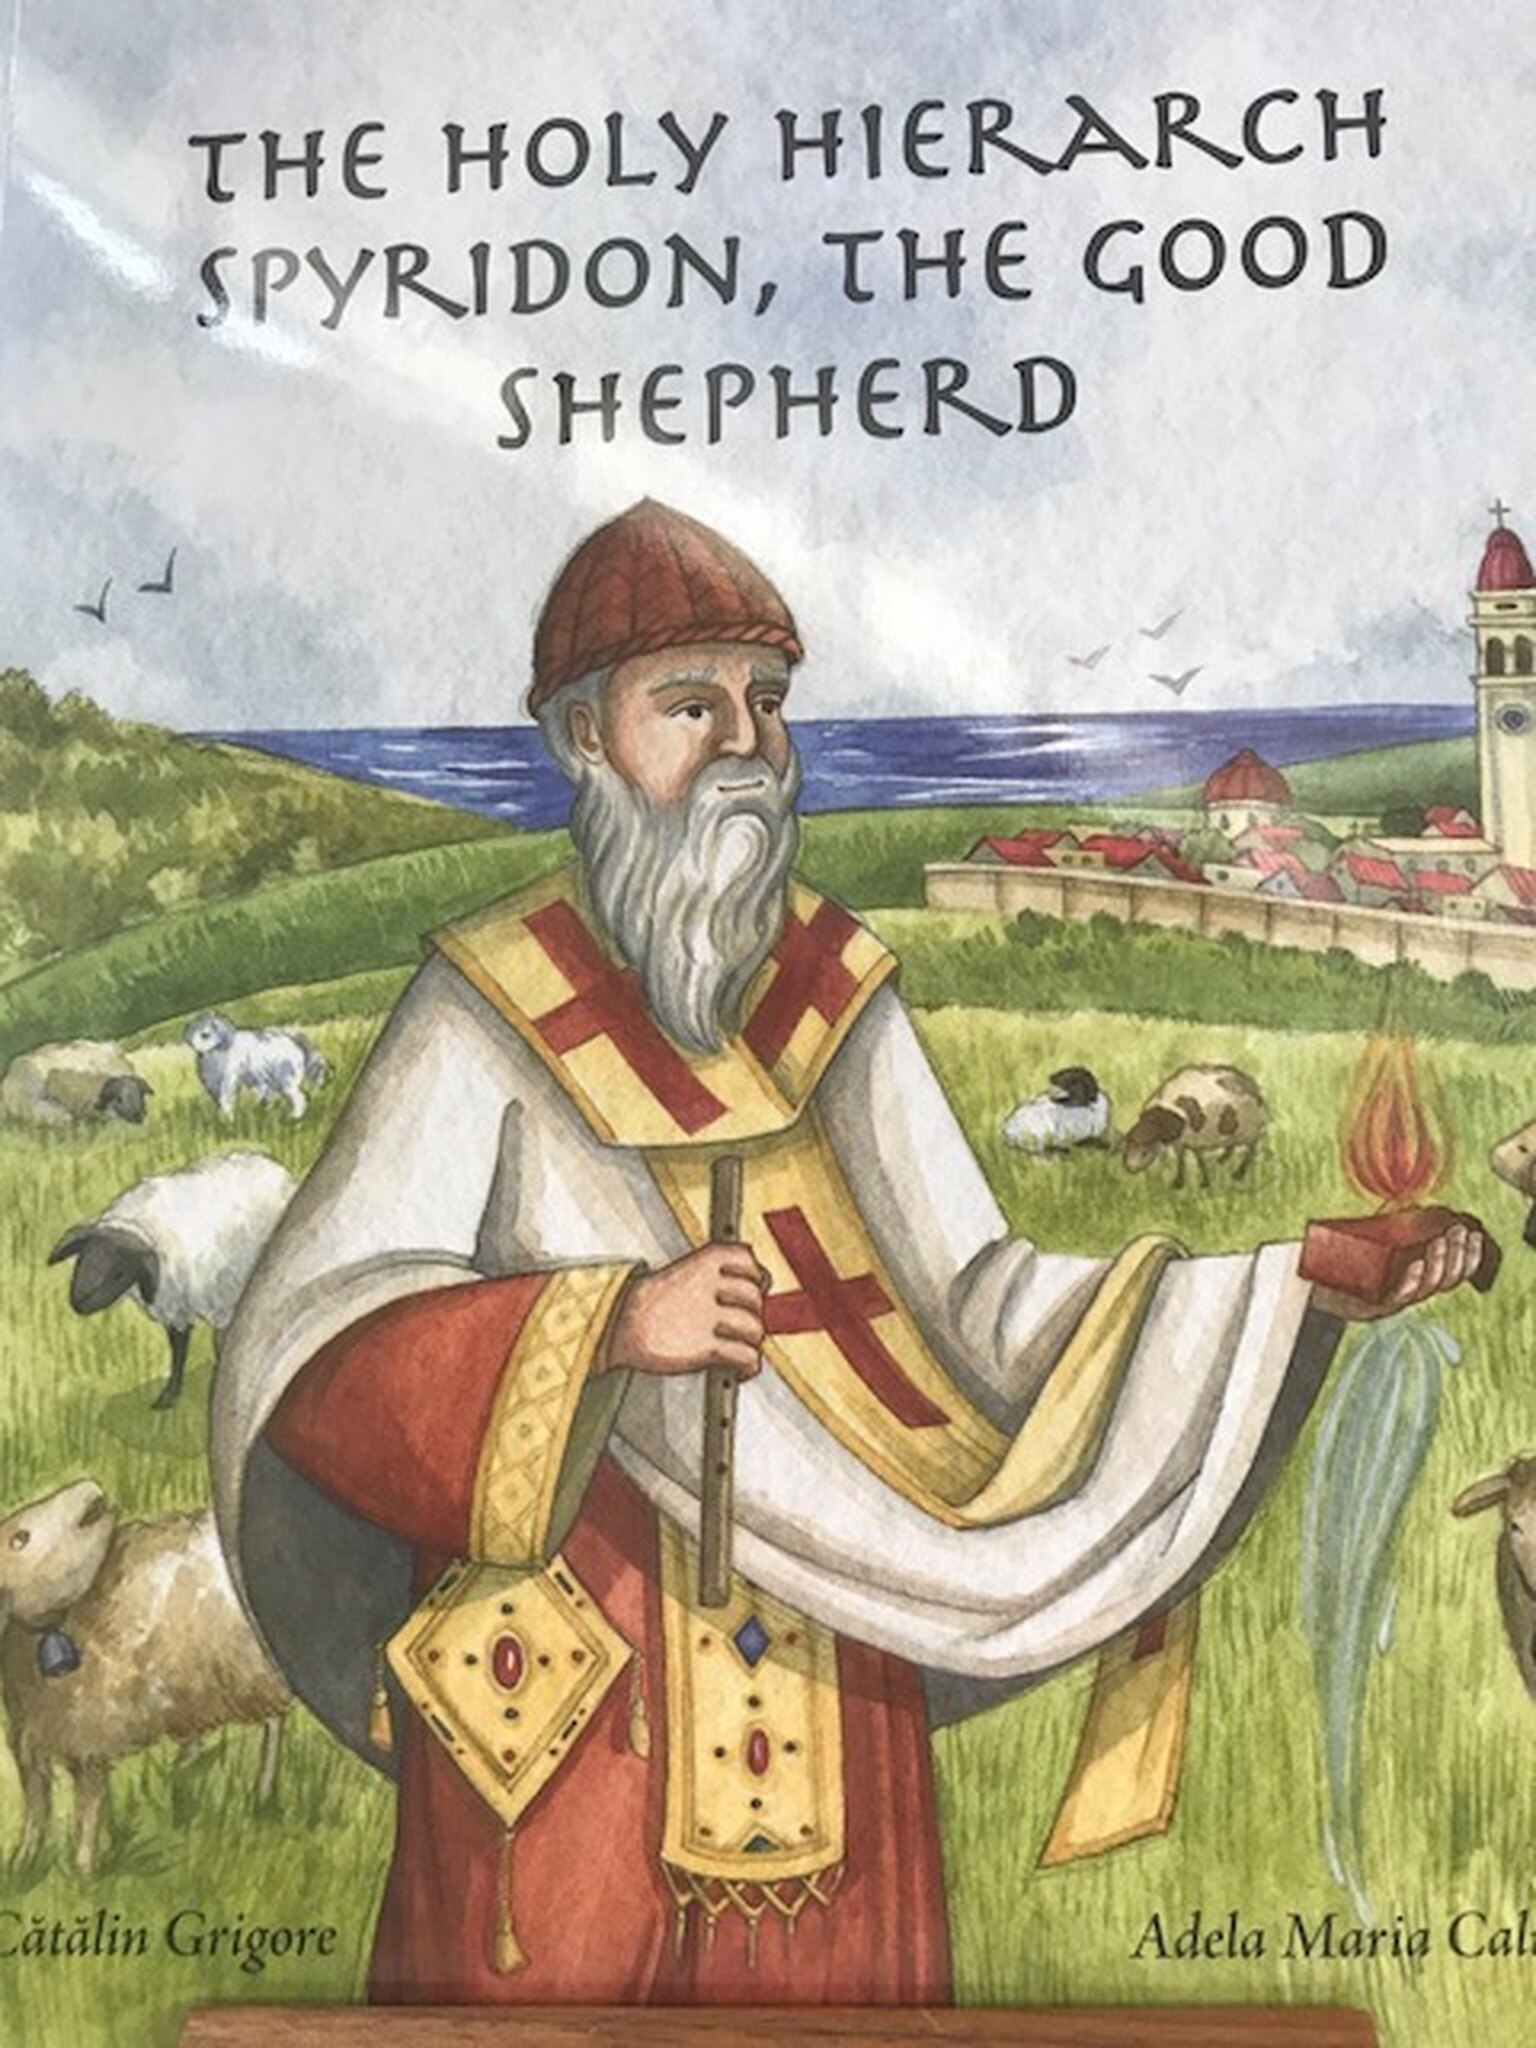 The Holy Hierarch Spyridon, The Good Shepherd